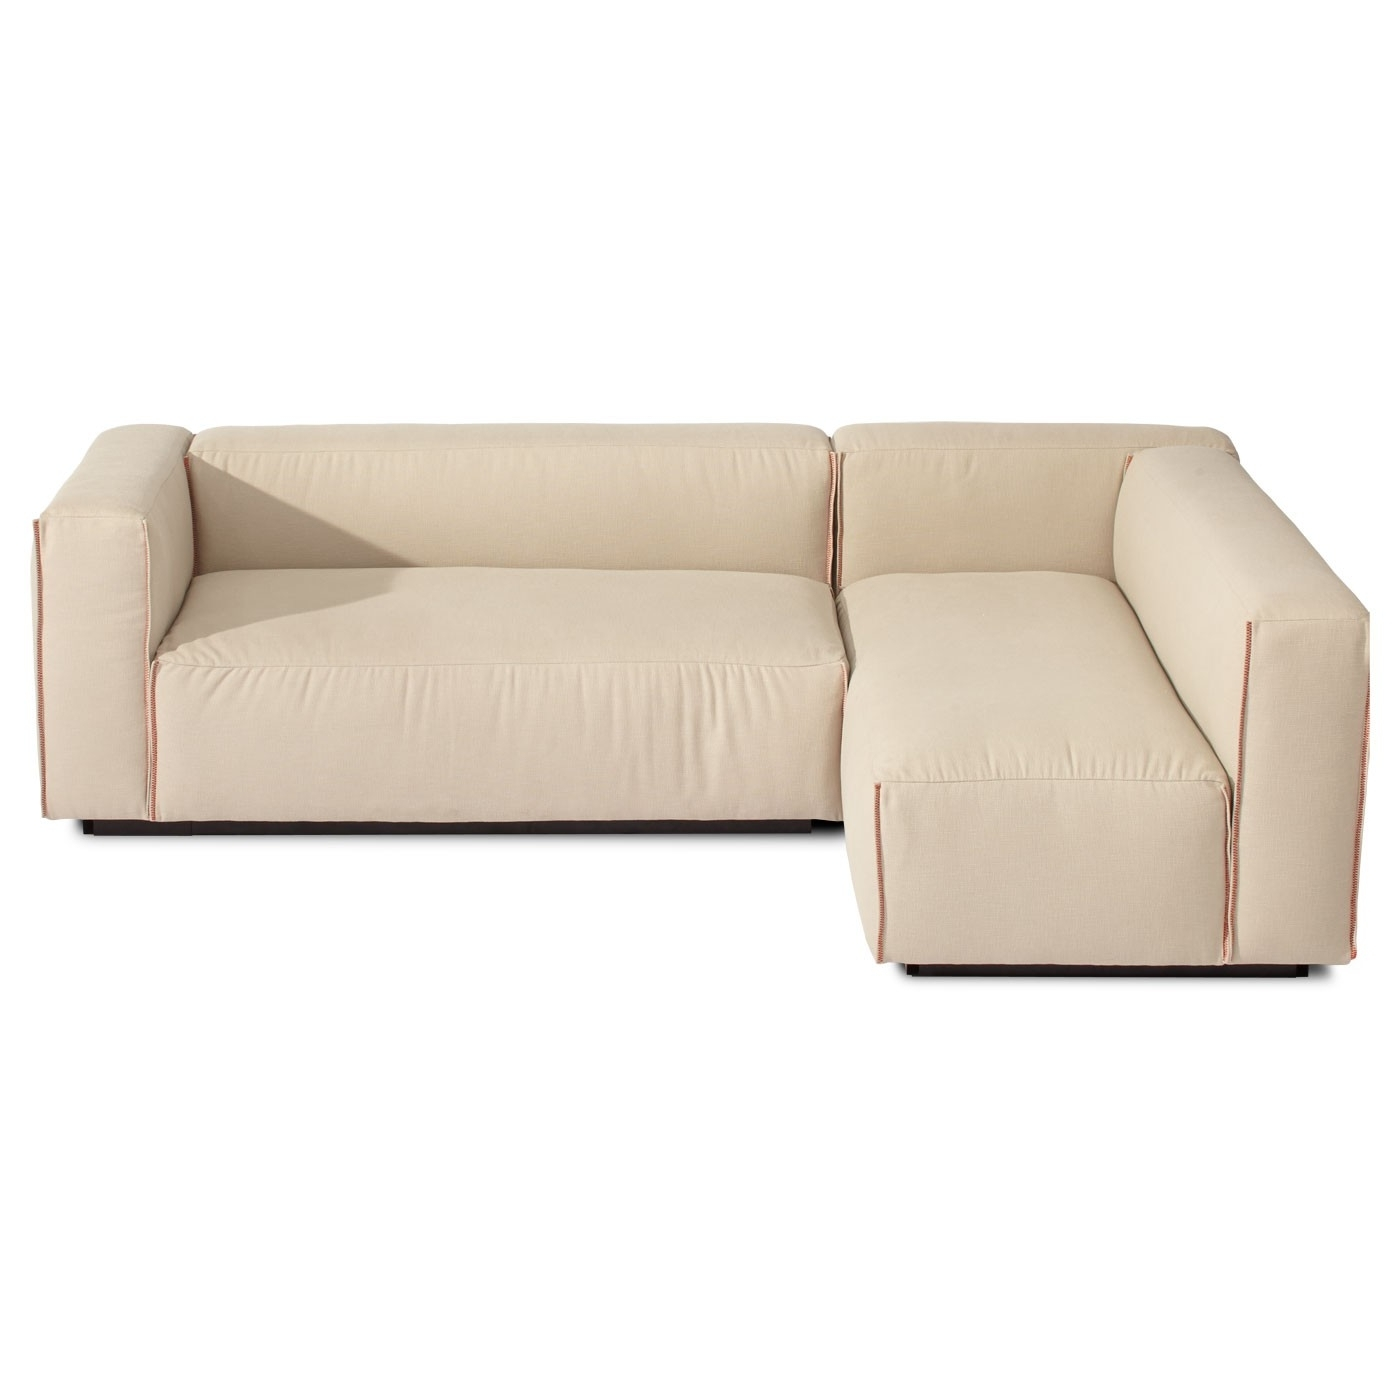 Well Known Armless Sectional Sofas With Regard To Sectional Sofa Design: Elegant Small Modern Sectional Sofa (View 16 of 20)